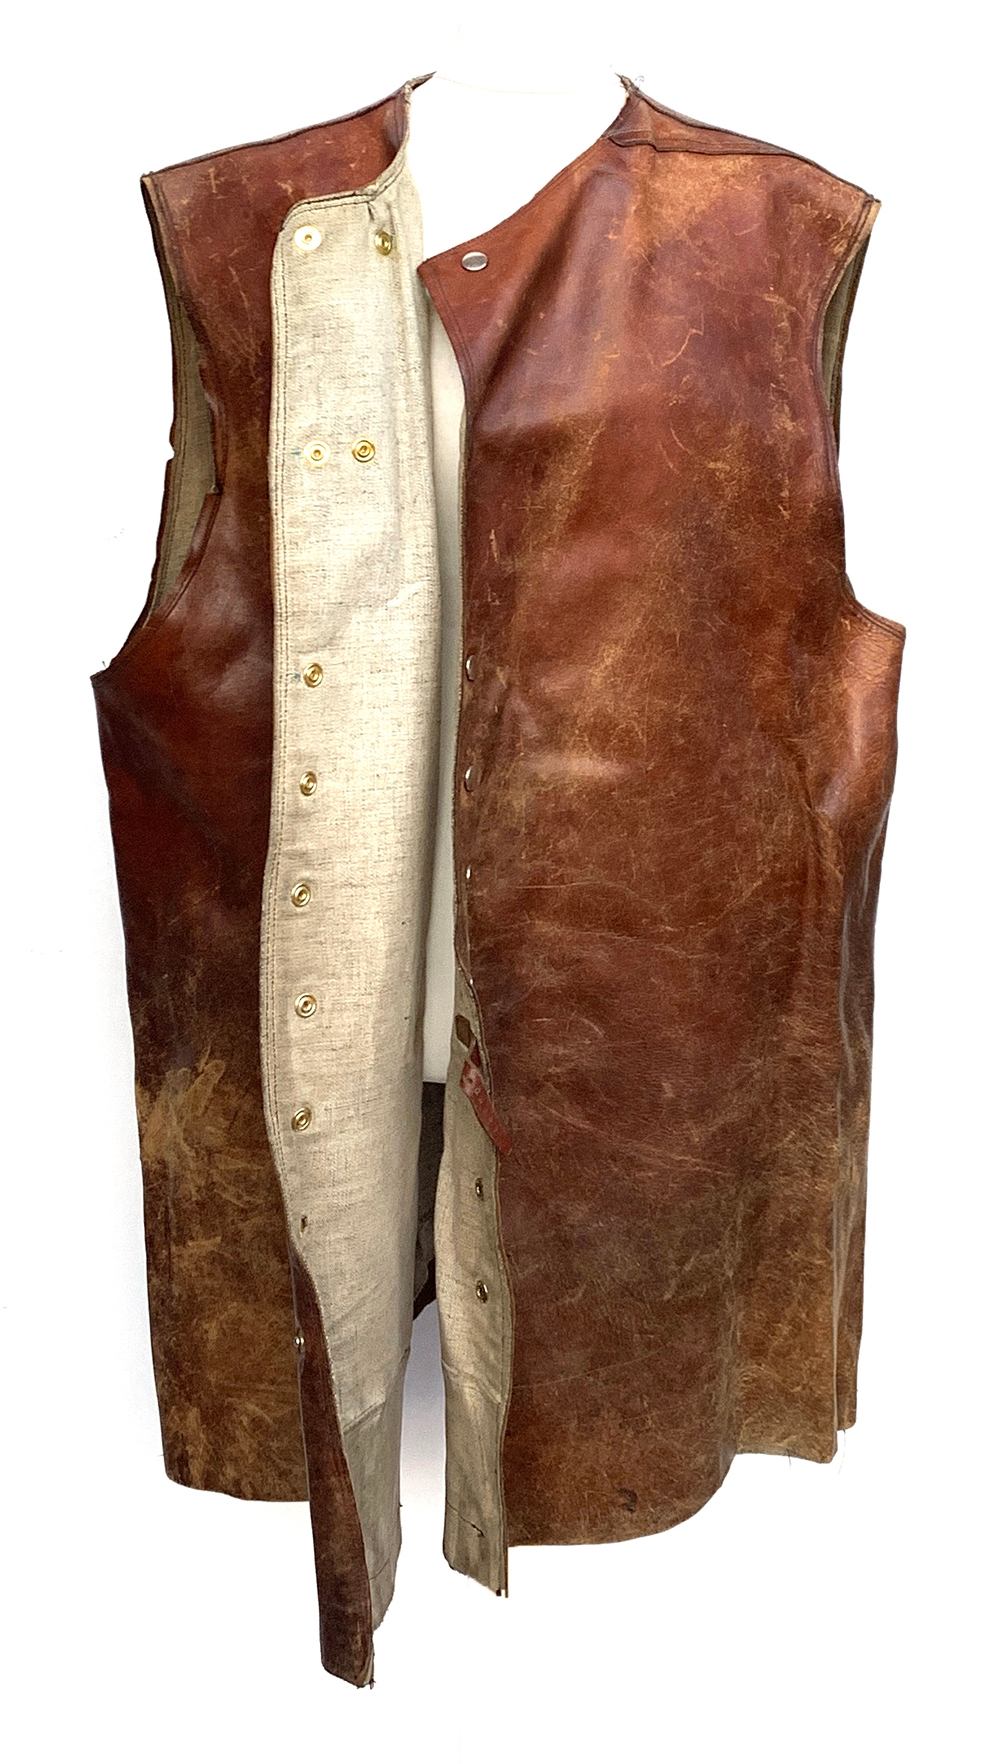 A leather and canvas jerkin, very large; together with a pair of twill jodhpurs with side